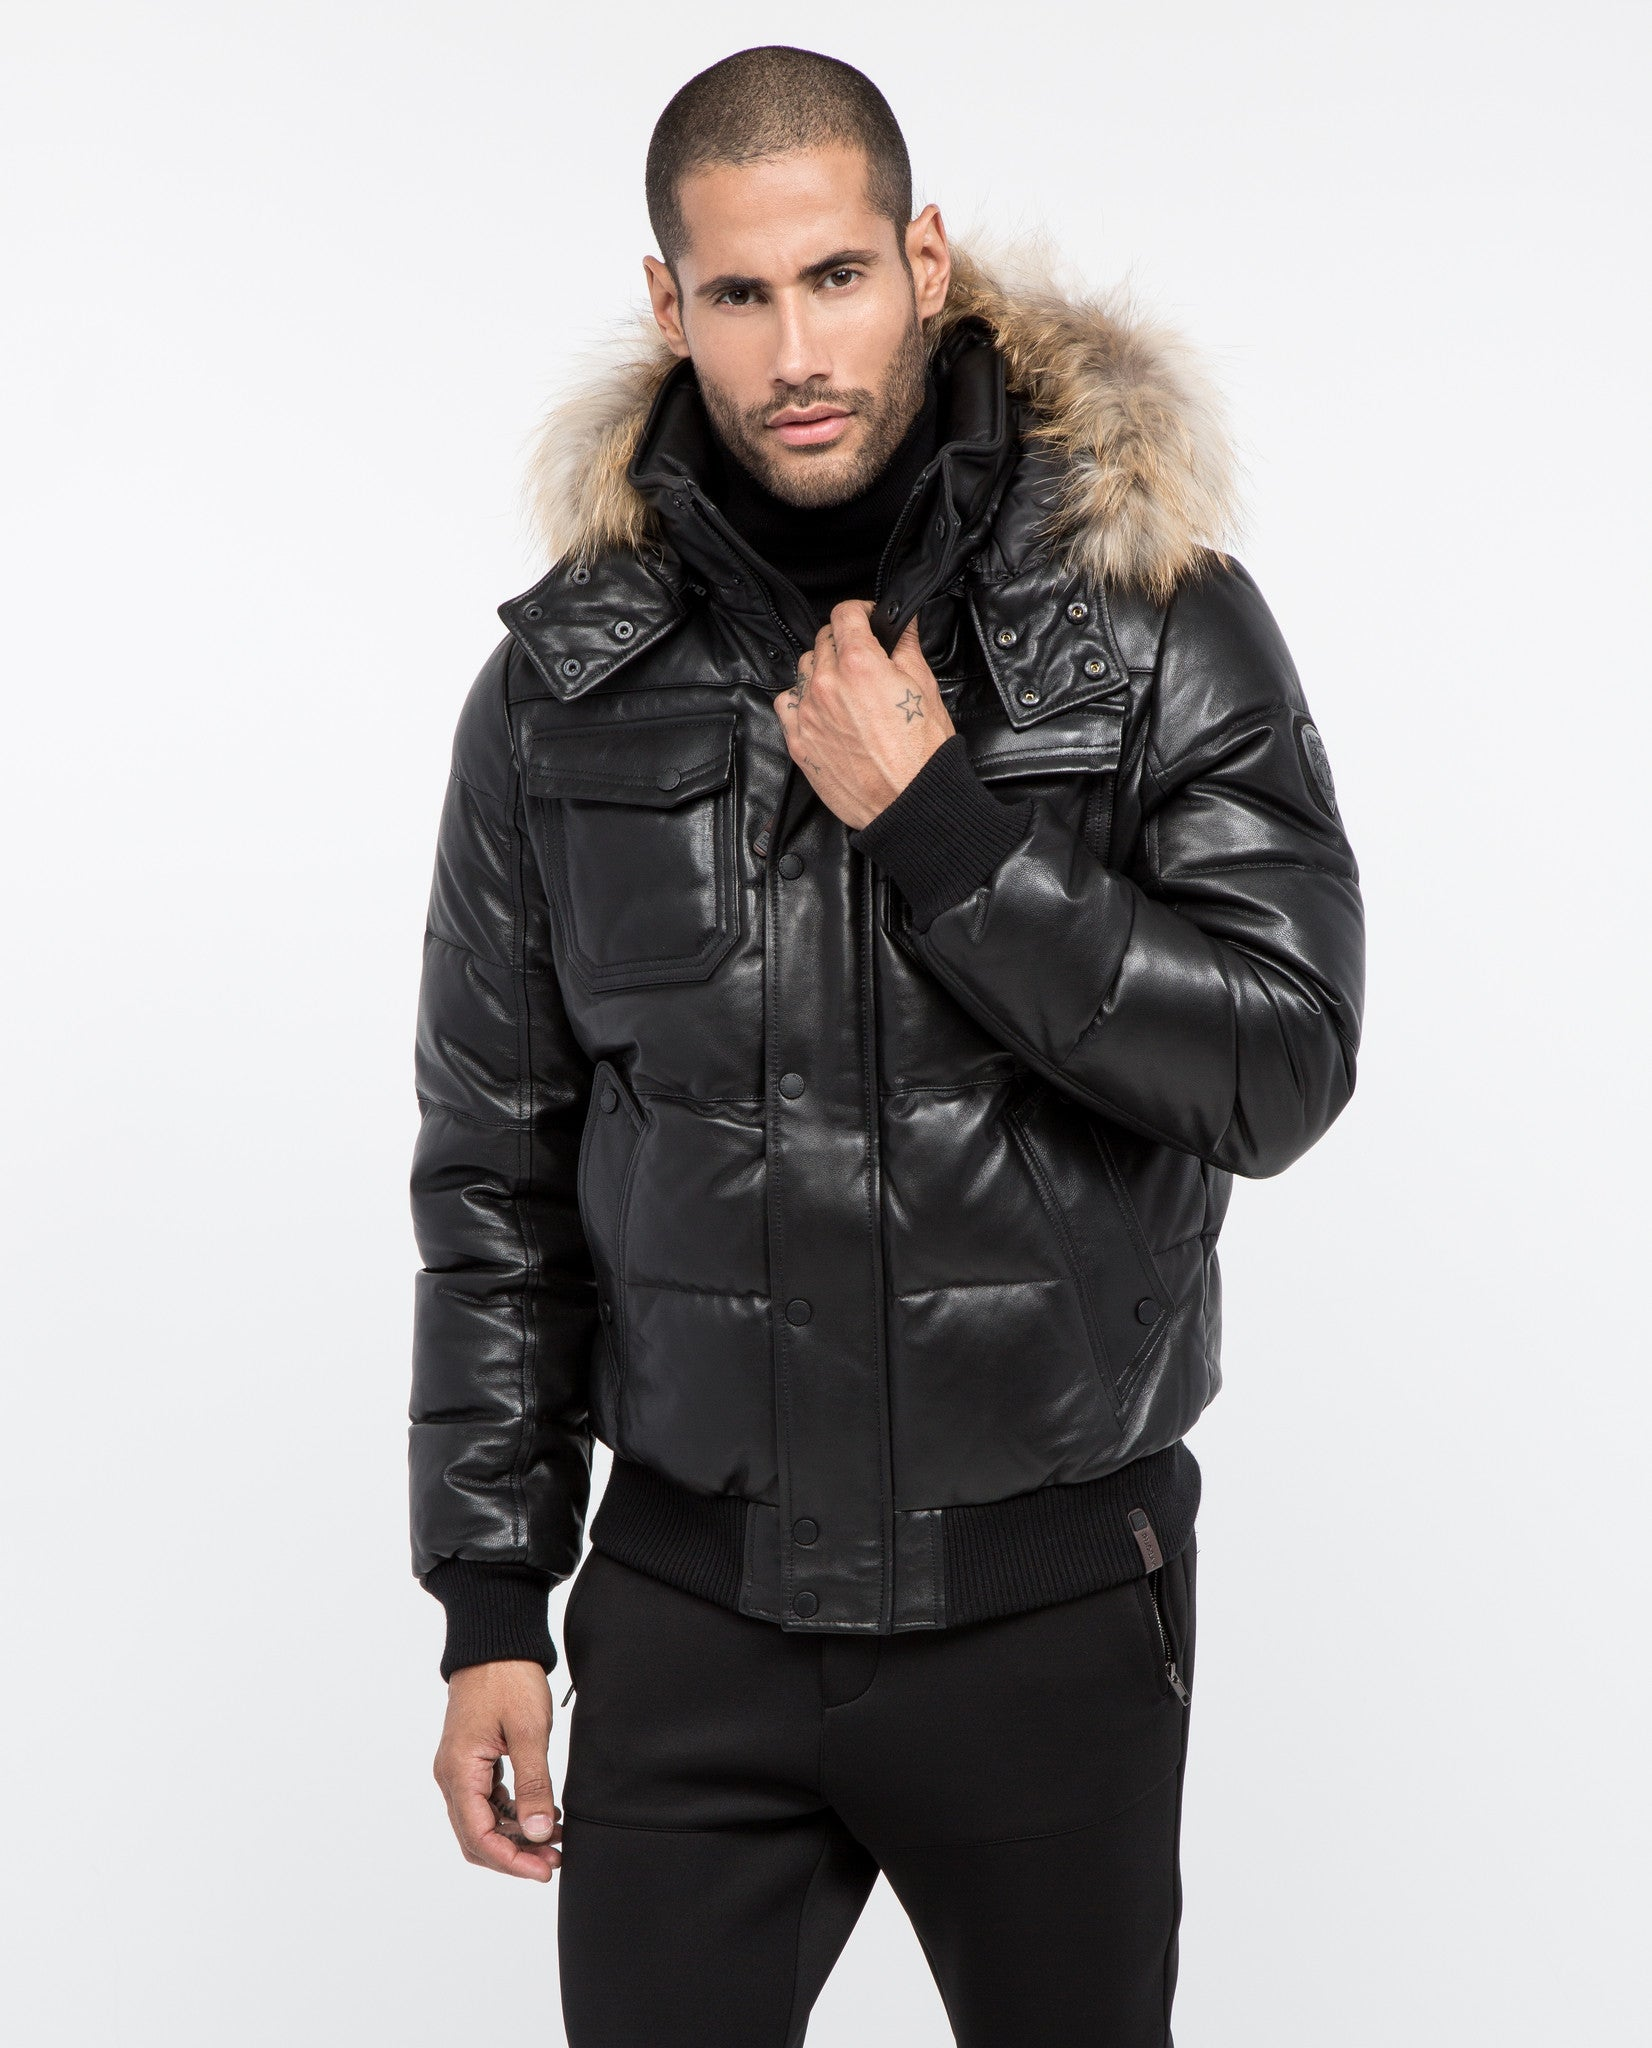 Viper Leather Bomber Jacket With Fur Trim